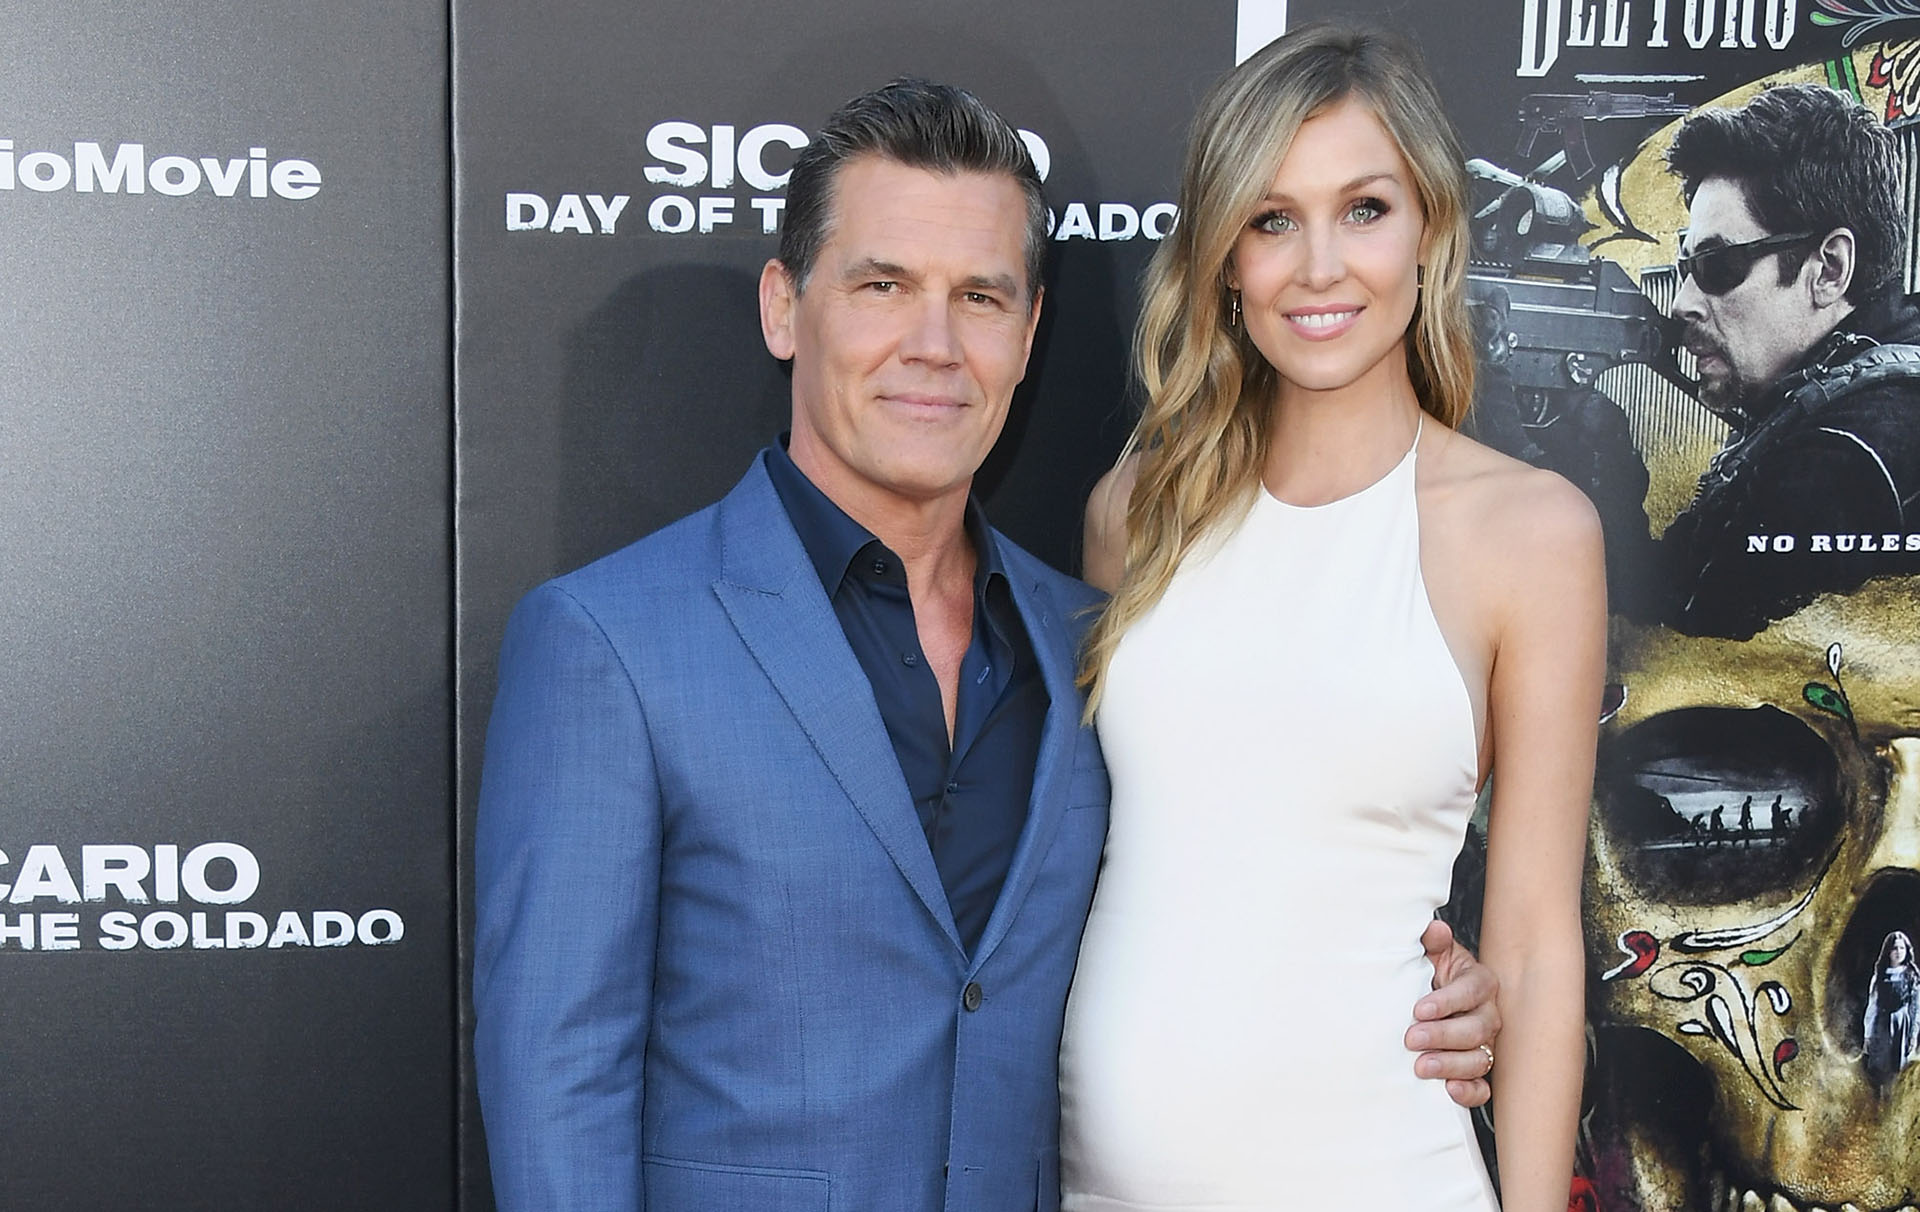 Josh Brolin And Wife Kathryn Have Welcomed A Baby Daughter